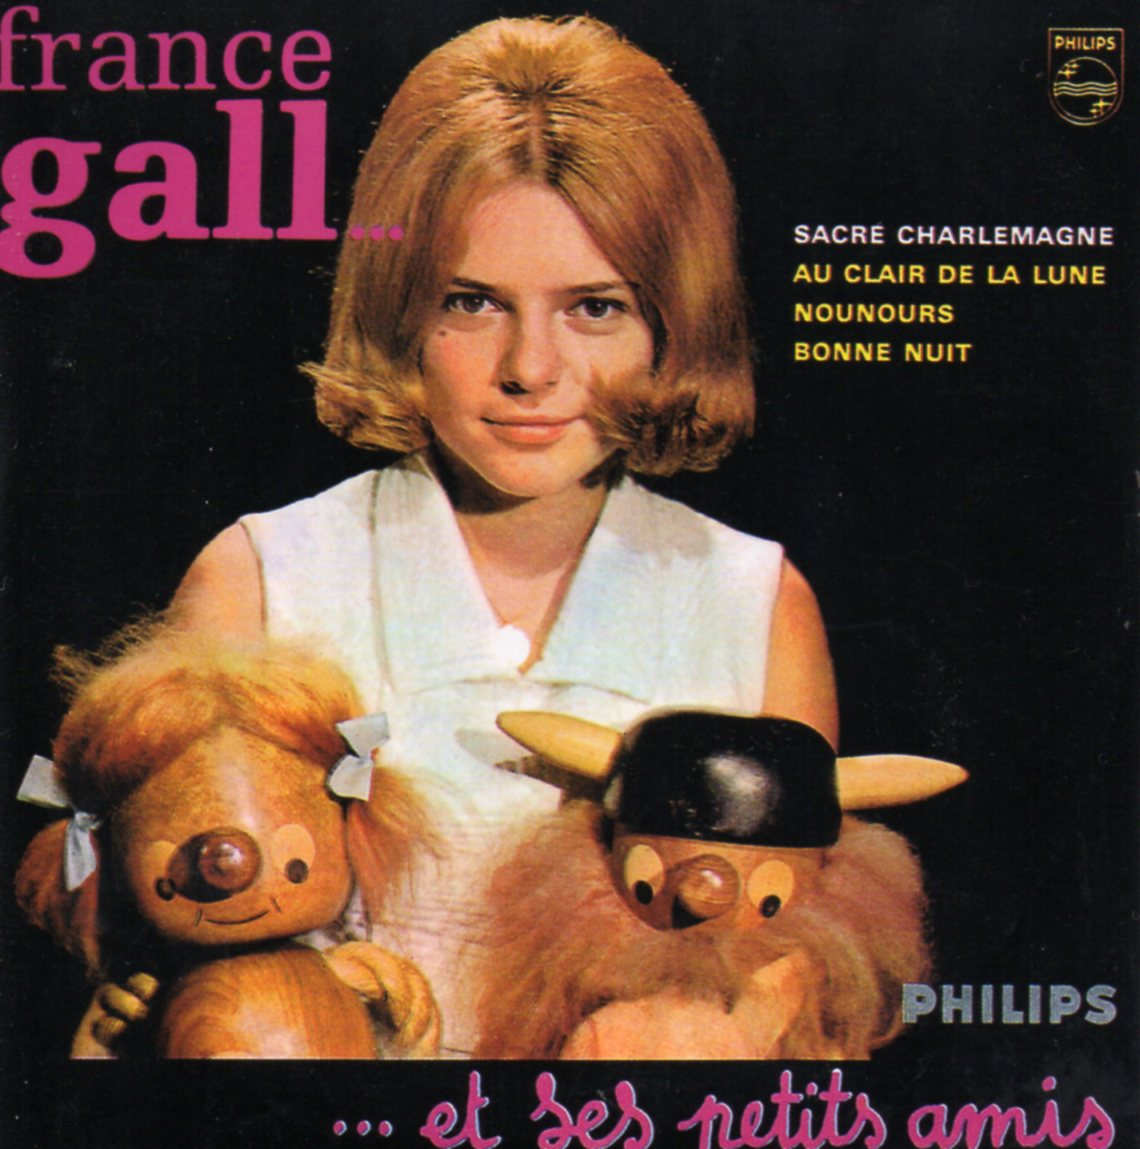 FRANCE GALL - Sacré Charlemagne 4-track CARD SLEEVE - CD single